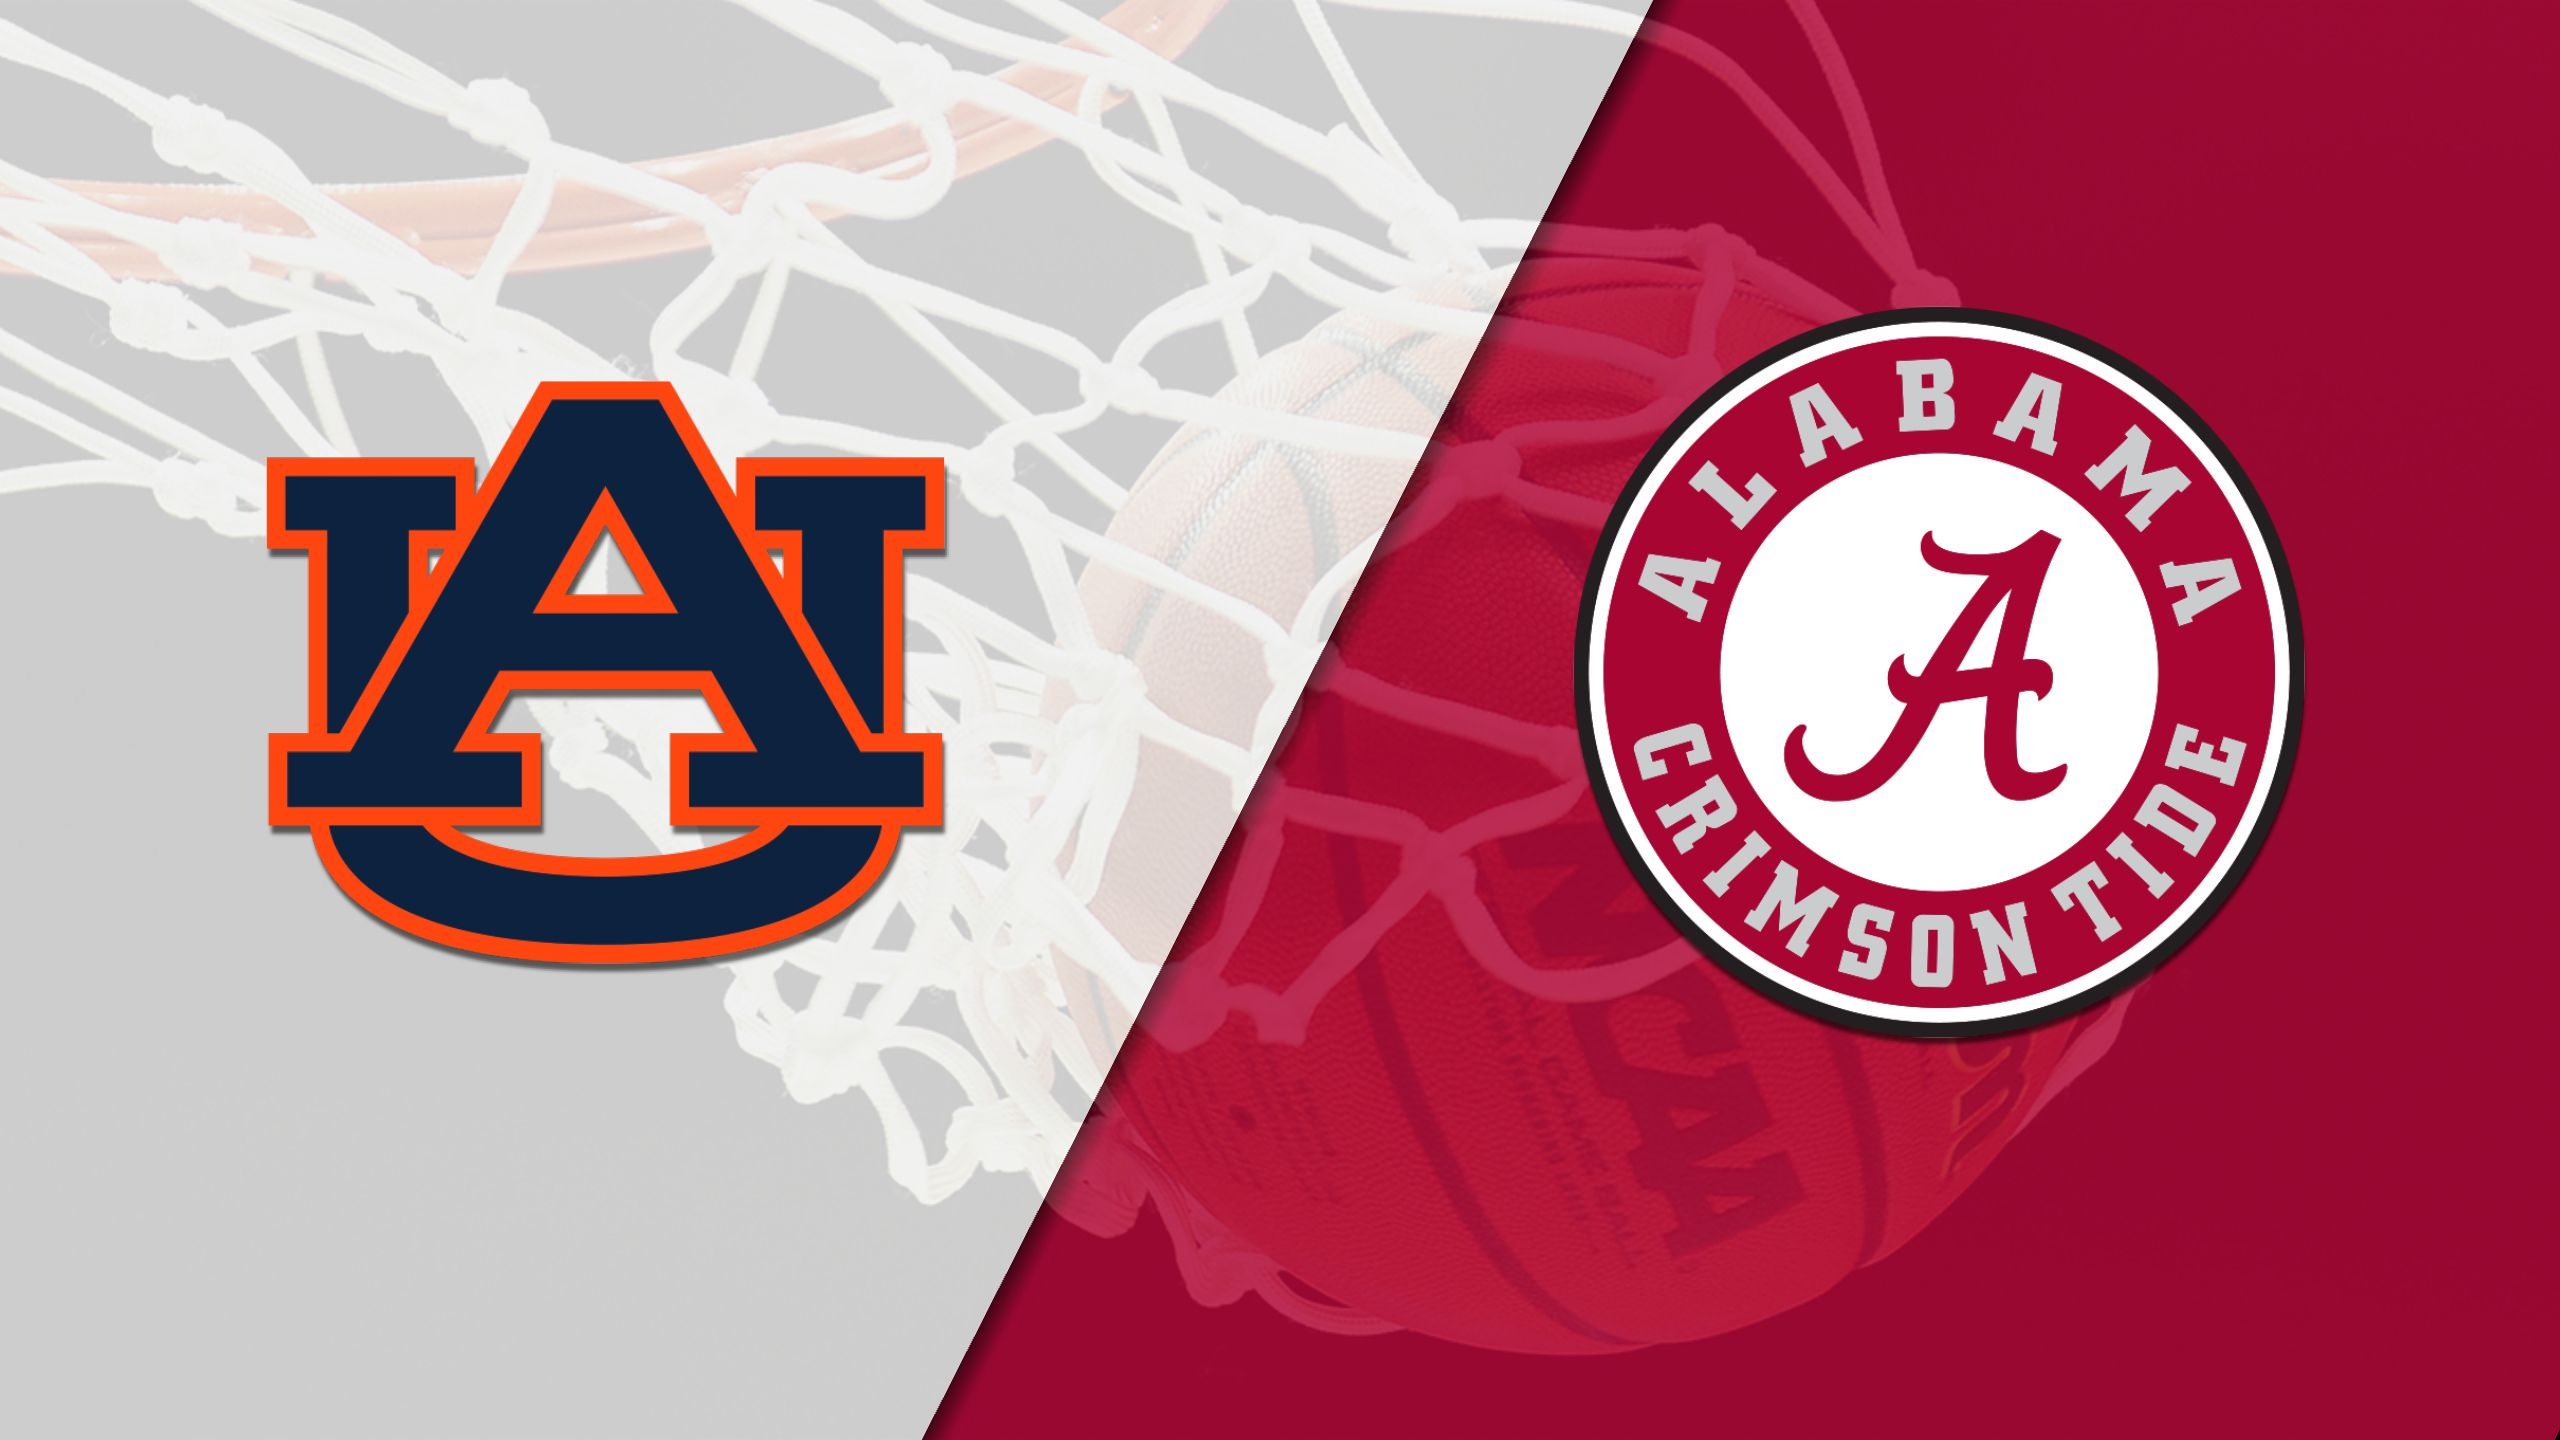 #17 Auburn vs. Alabama (M Basketball)